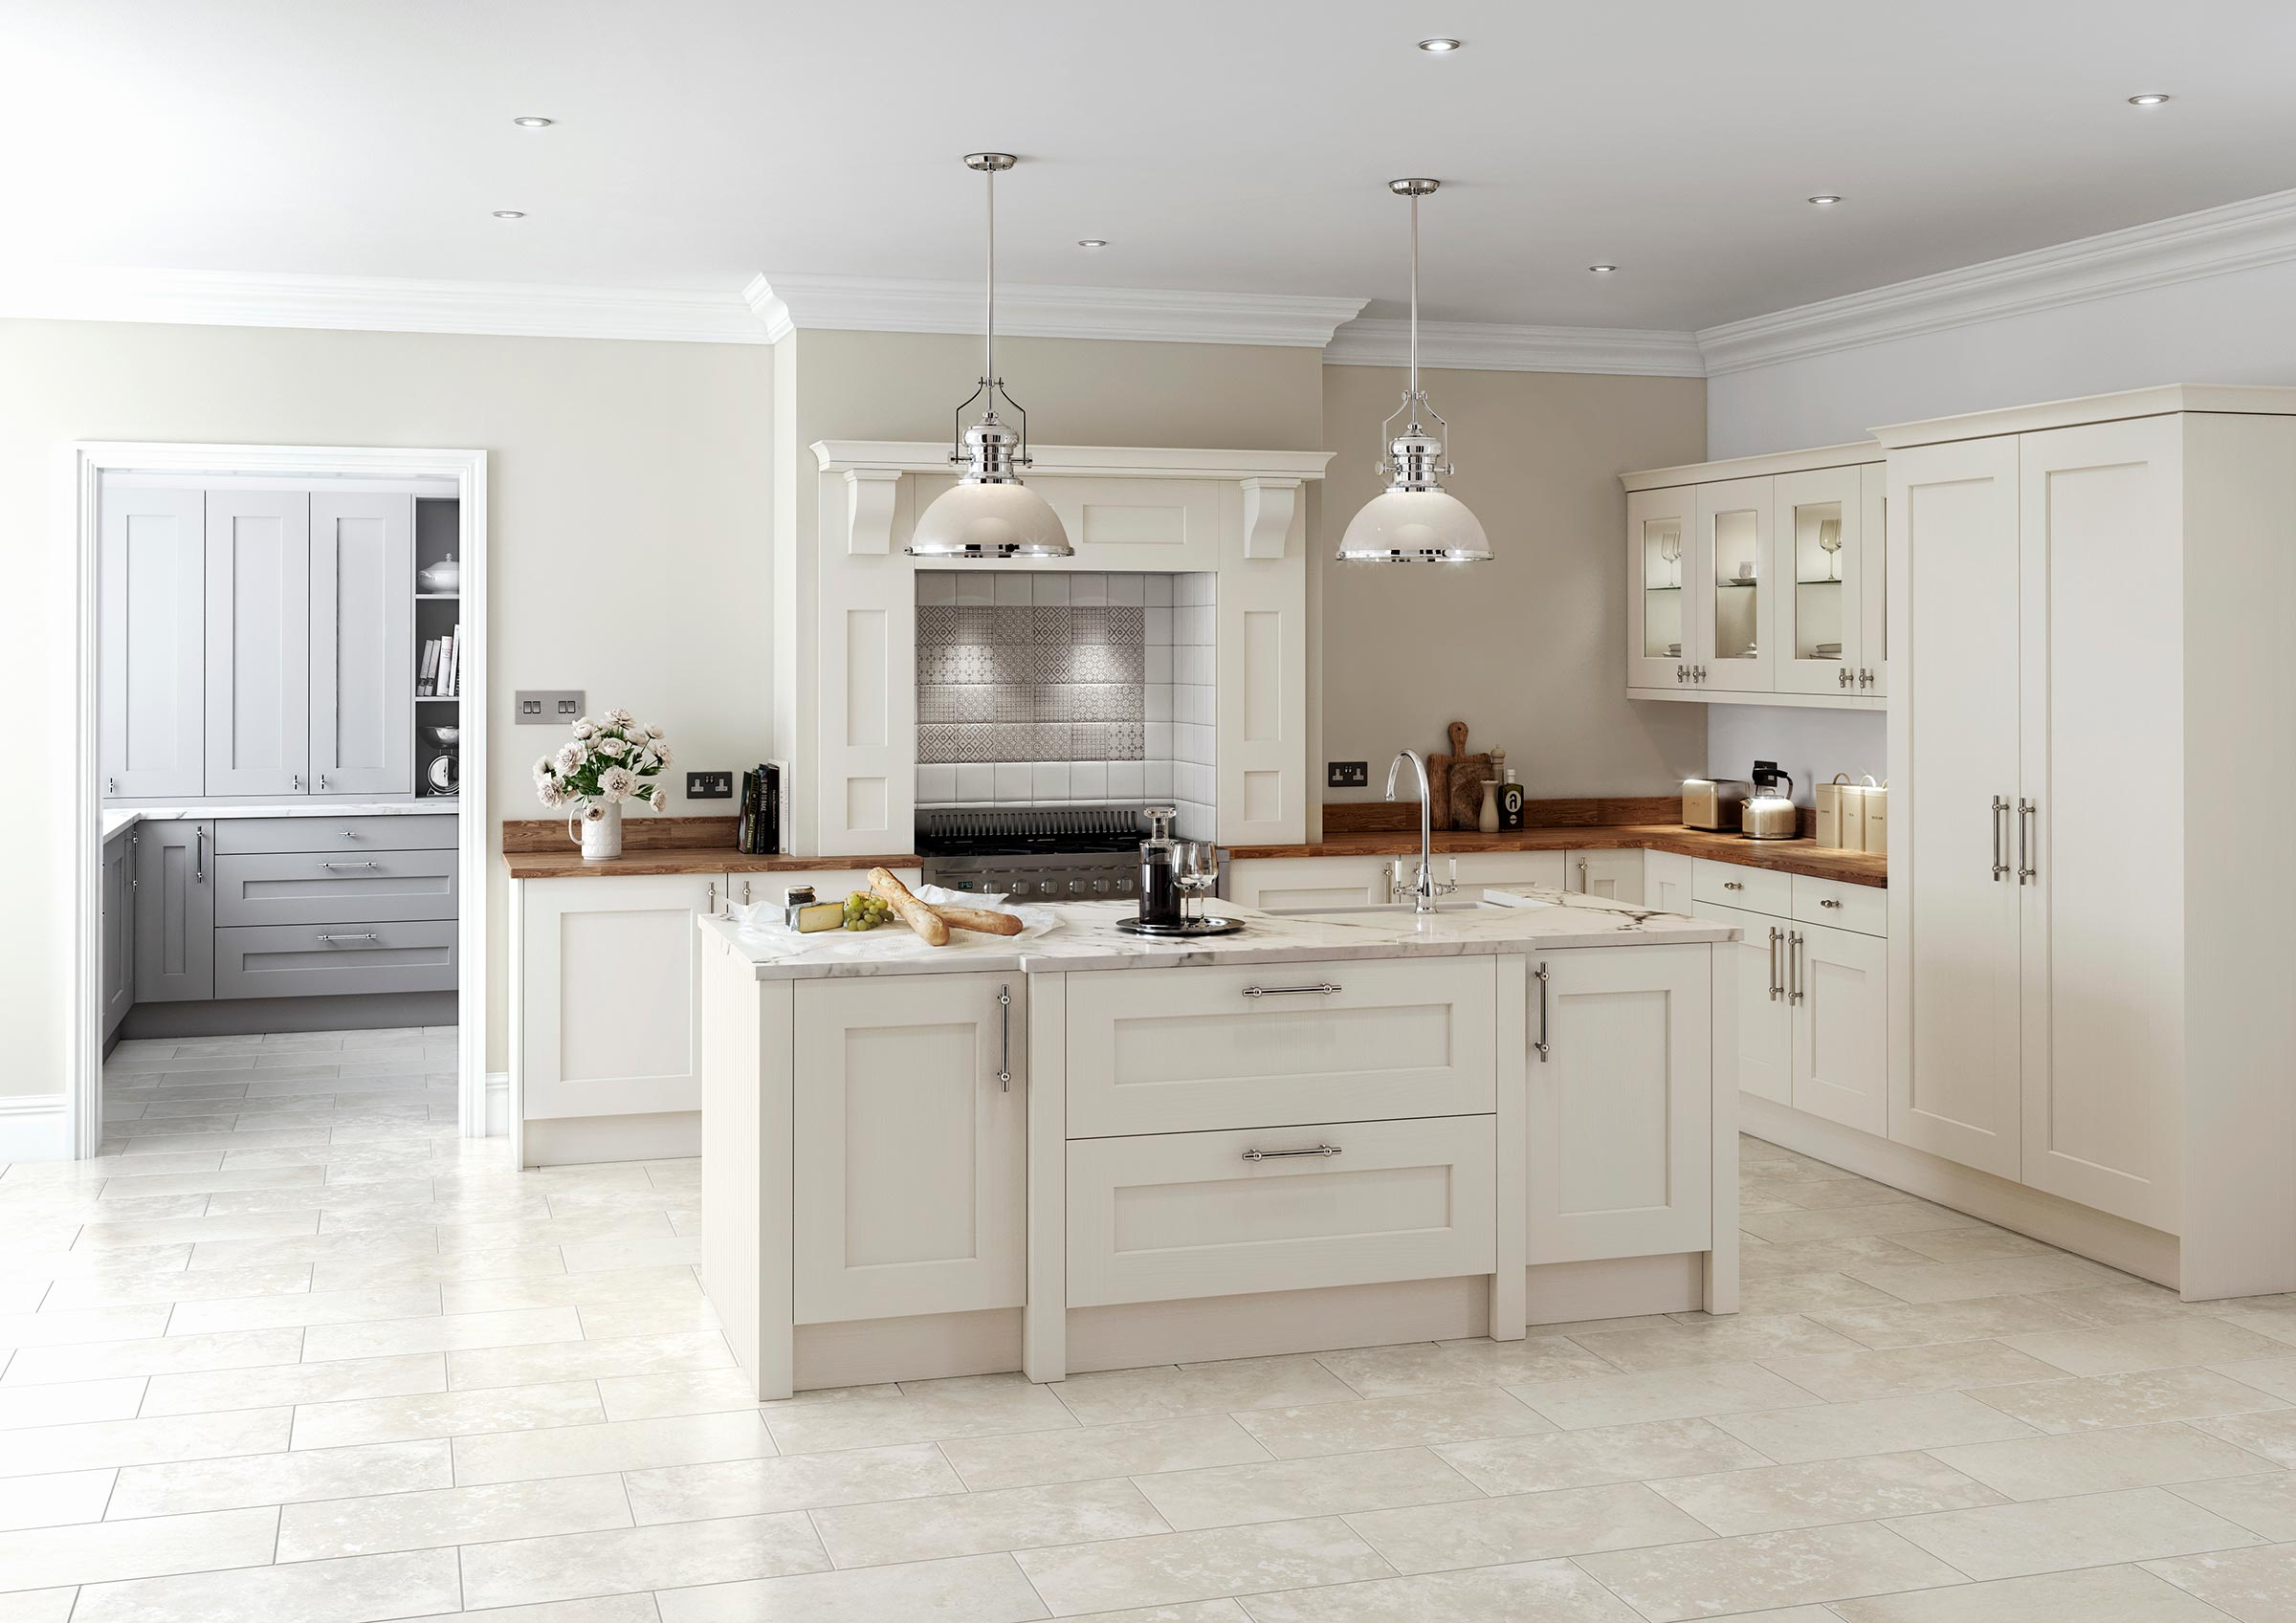 Traditional solid oak shaker kitchen painted cream with light marble and laquered wood worktops